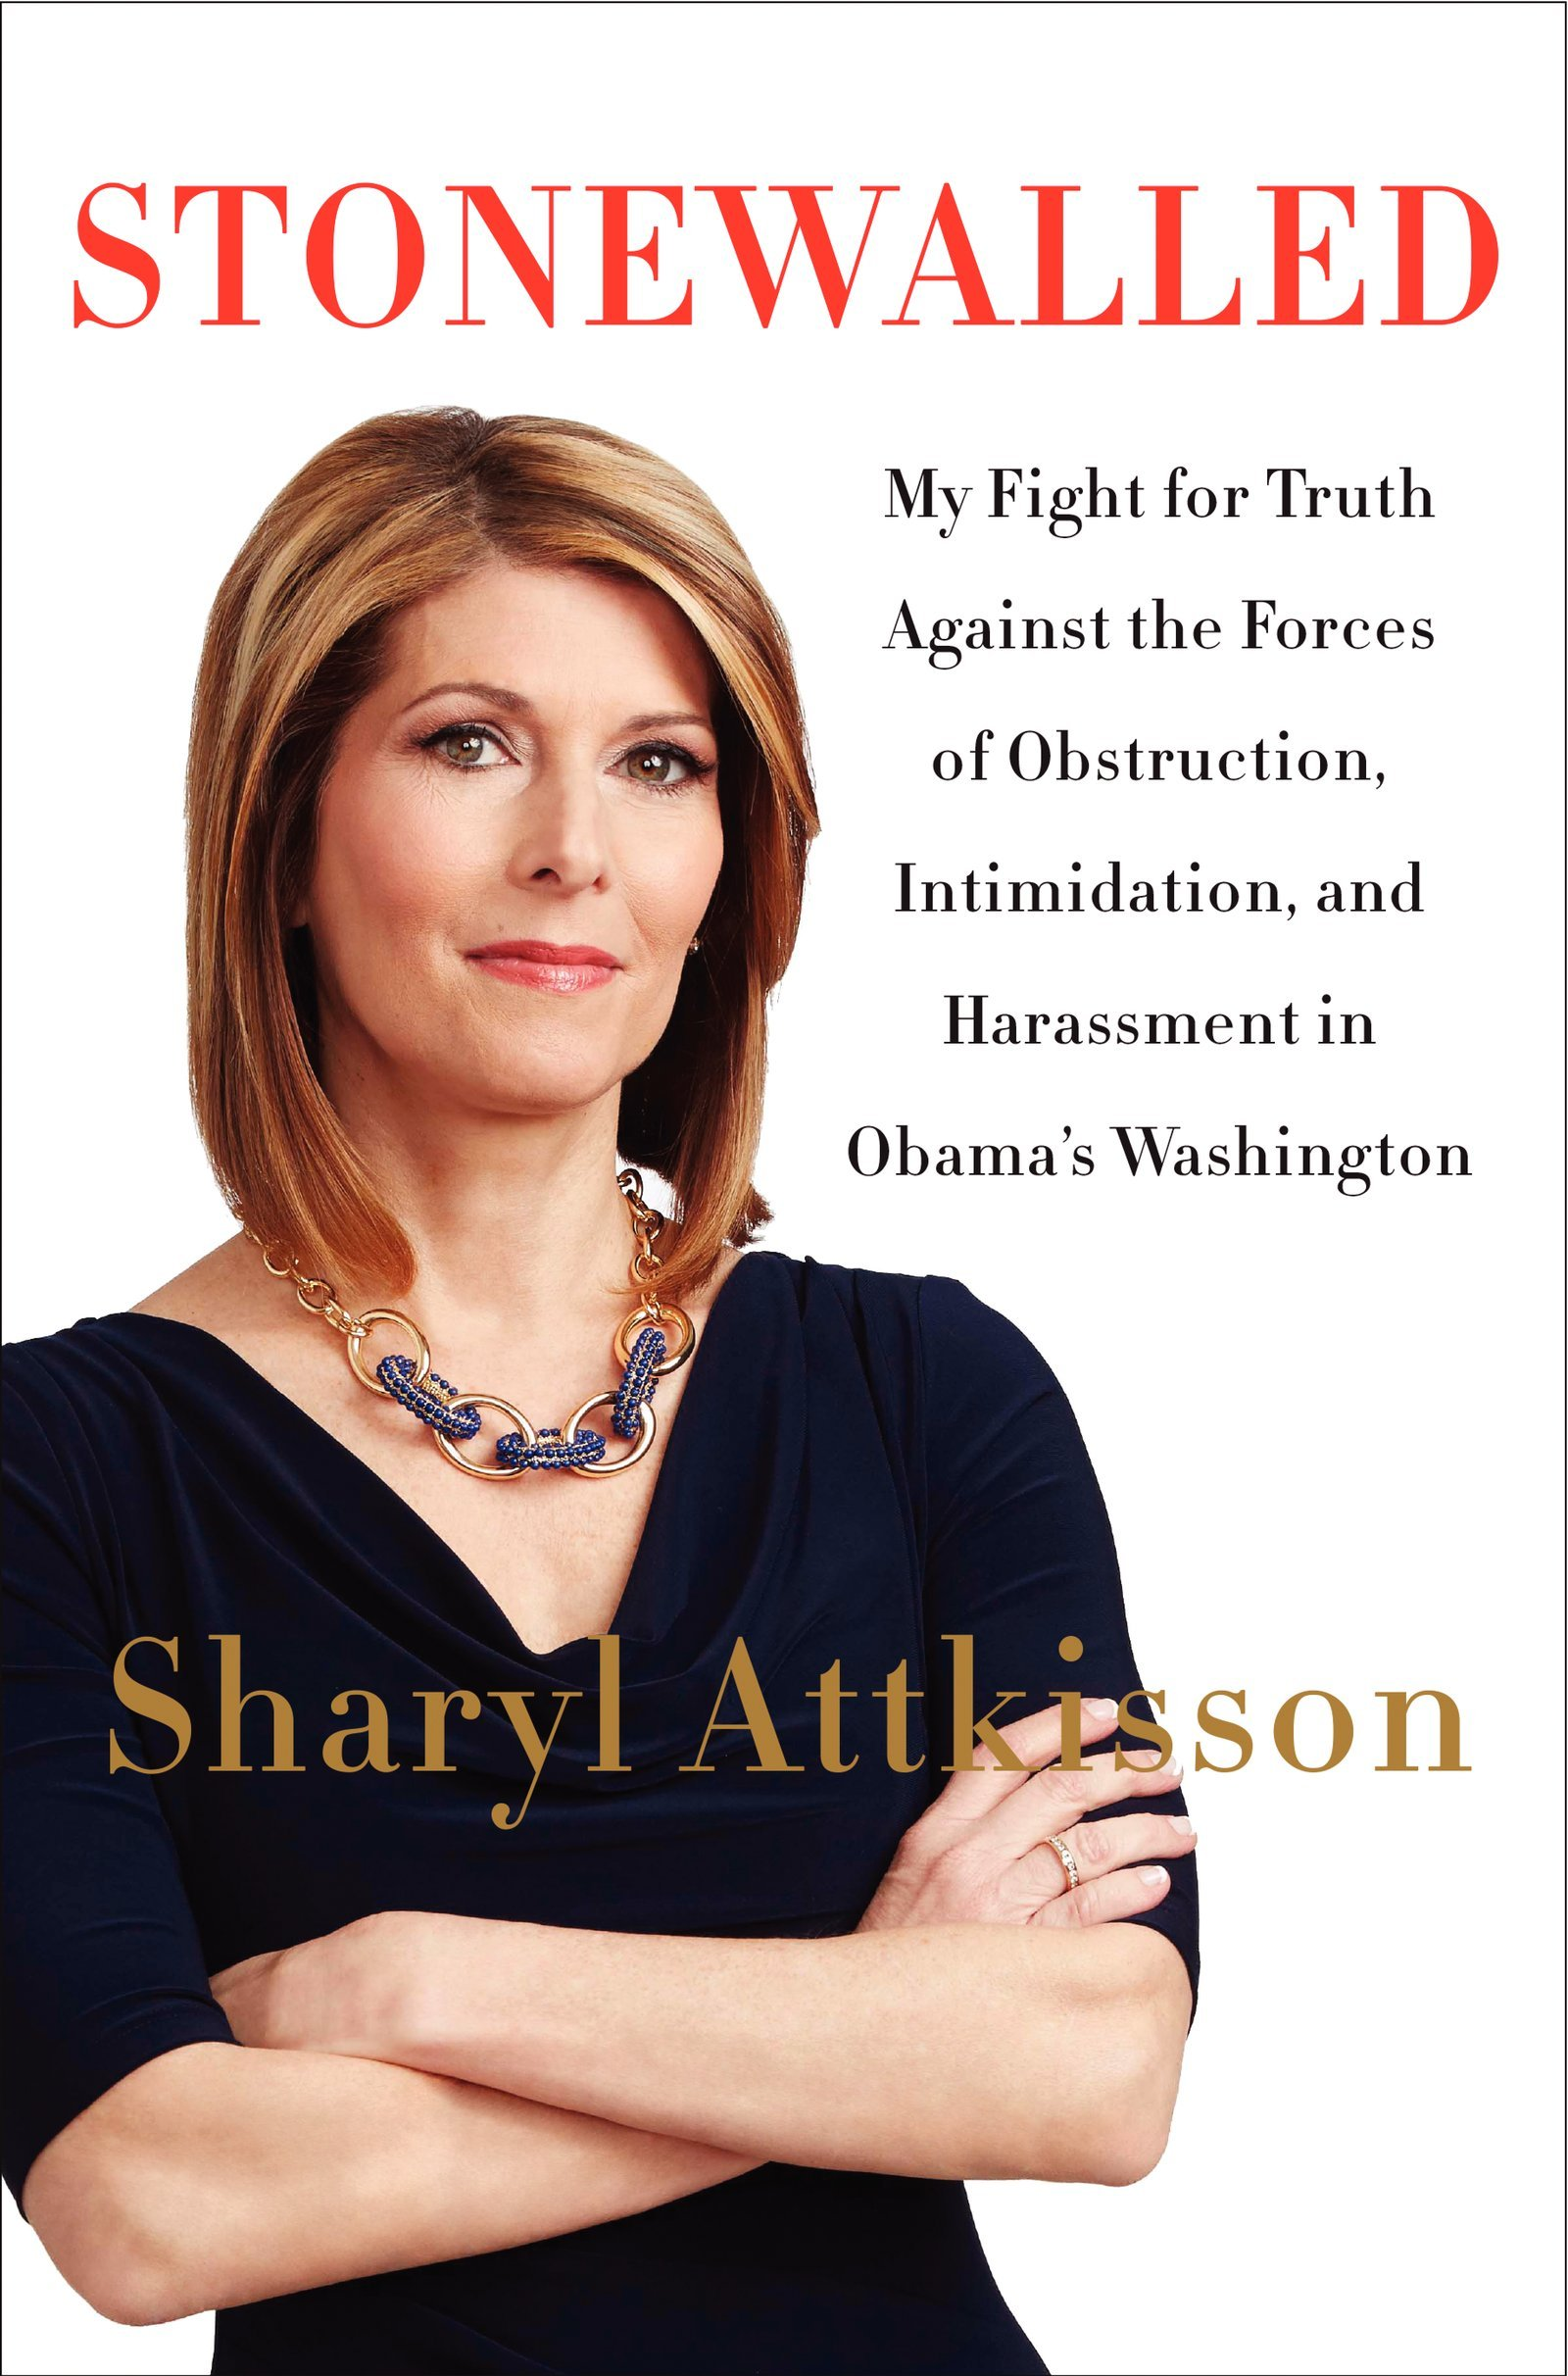 Sharyl Attkisson Stonewalled book